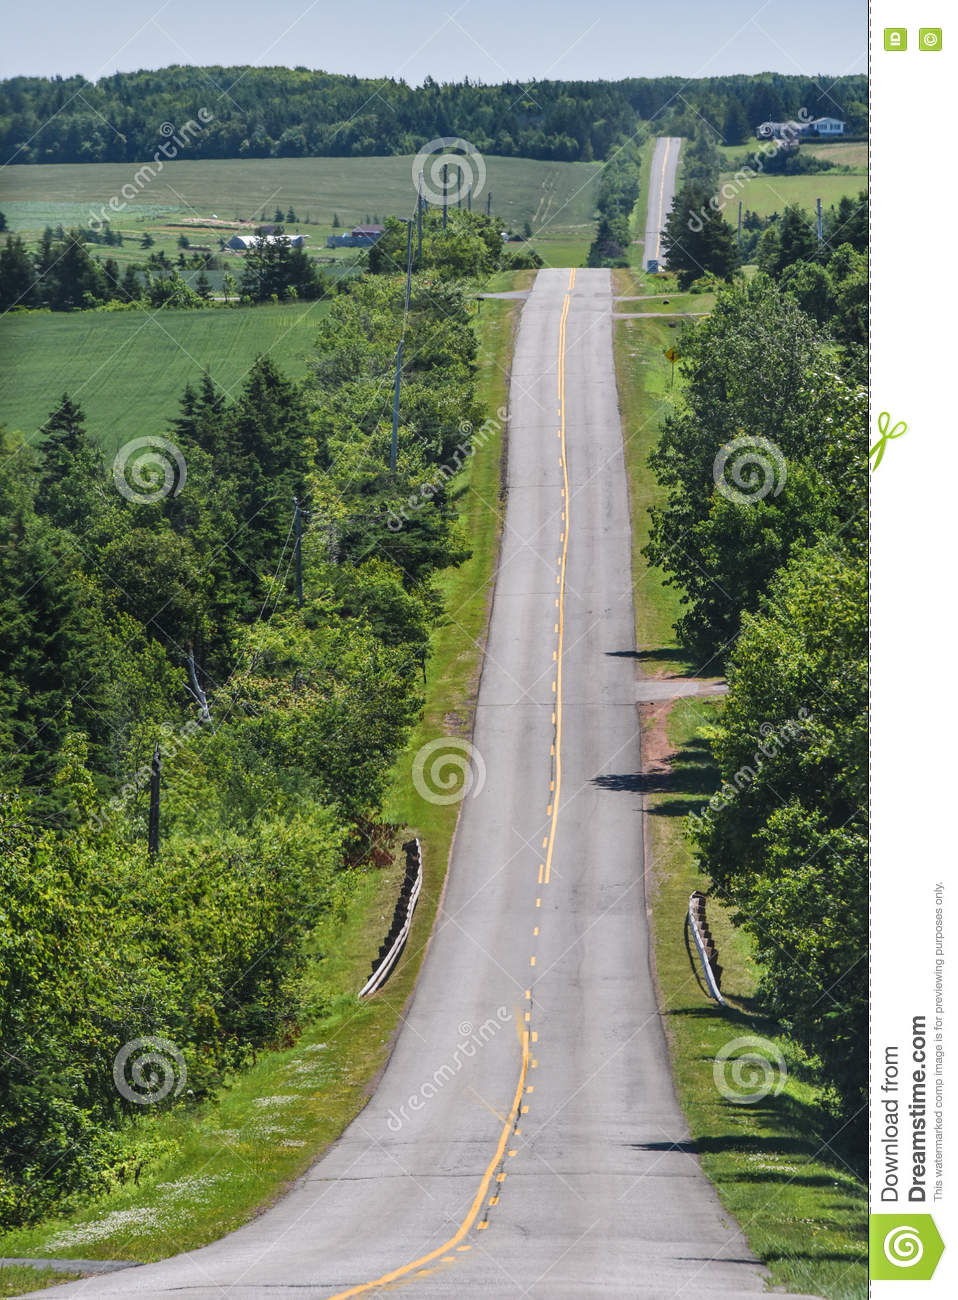 Straight Road Lined With Trees Goes Forever Stock Photo - Image ... for Straight Road With Trees  29dqh